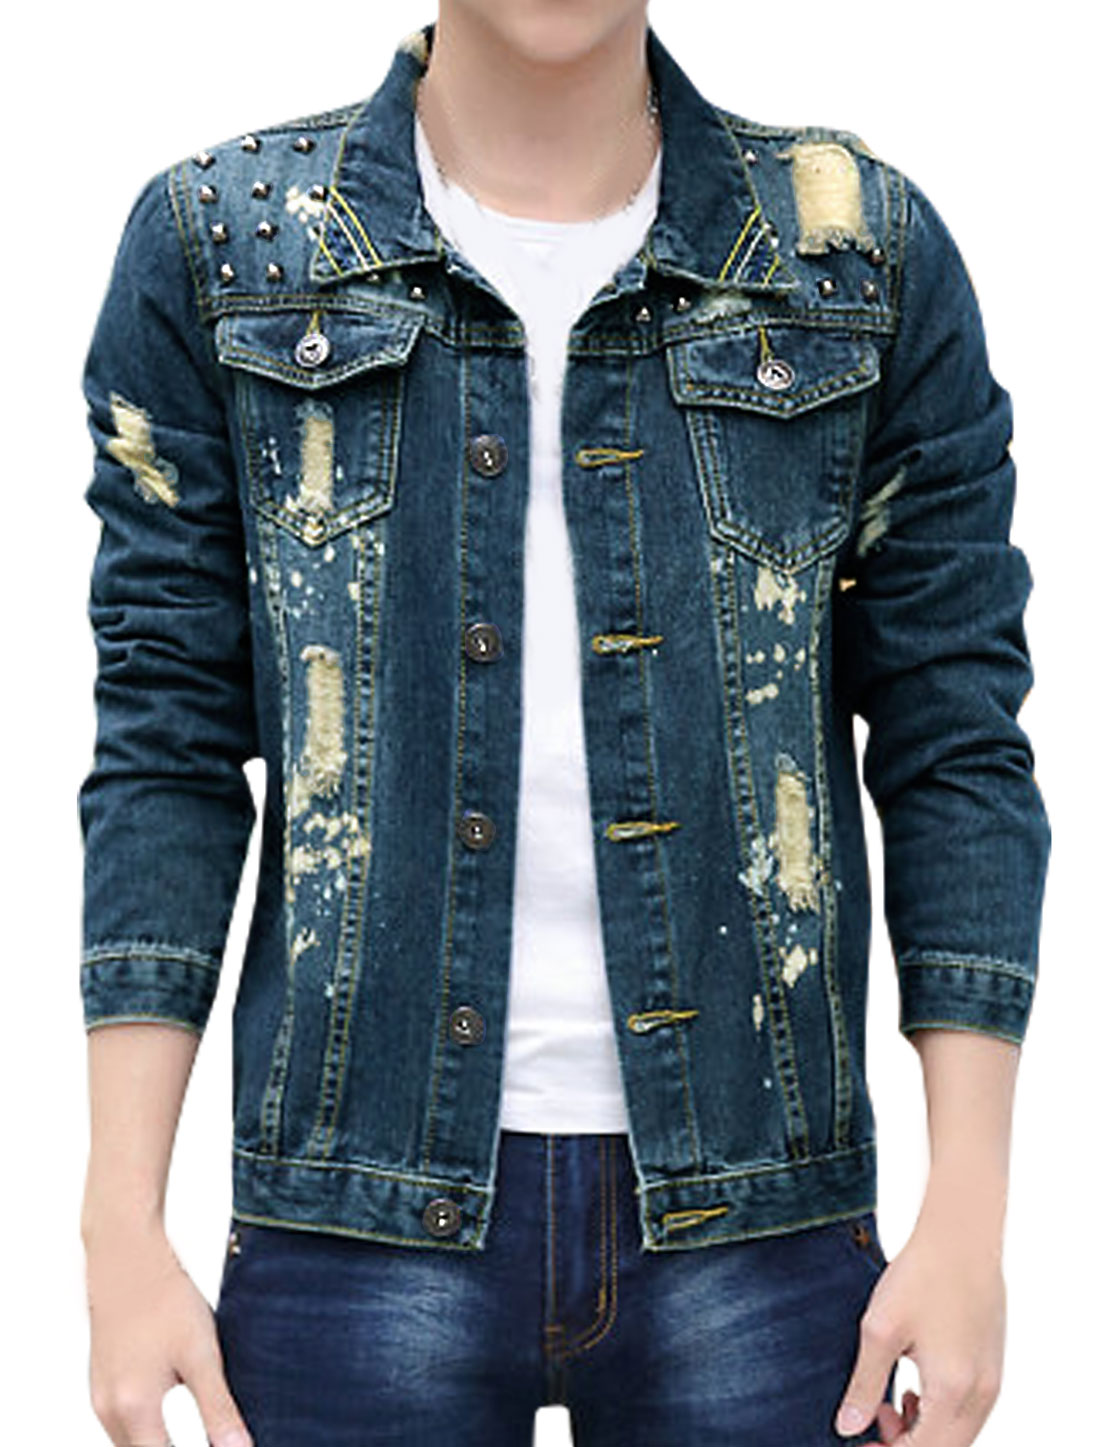 Men Rivets Decor Distressed Paint Spots Jean Jacket Blue S